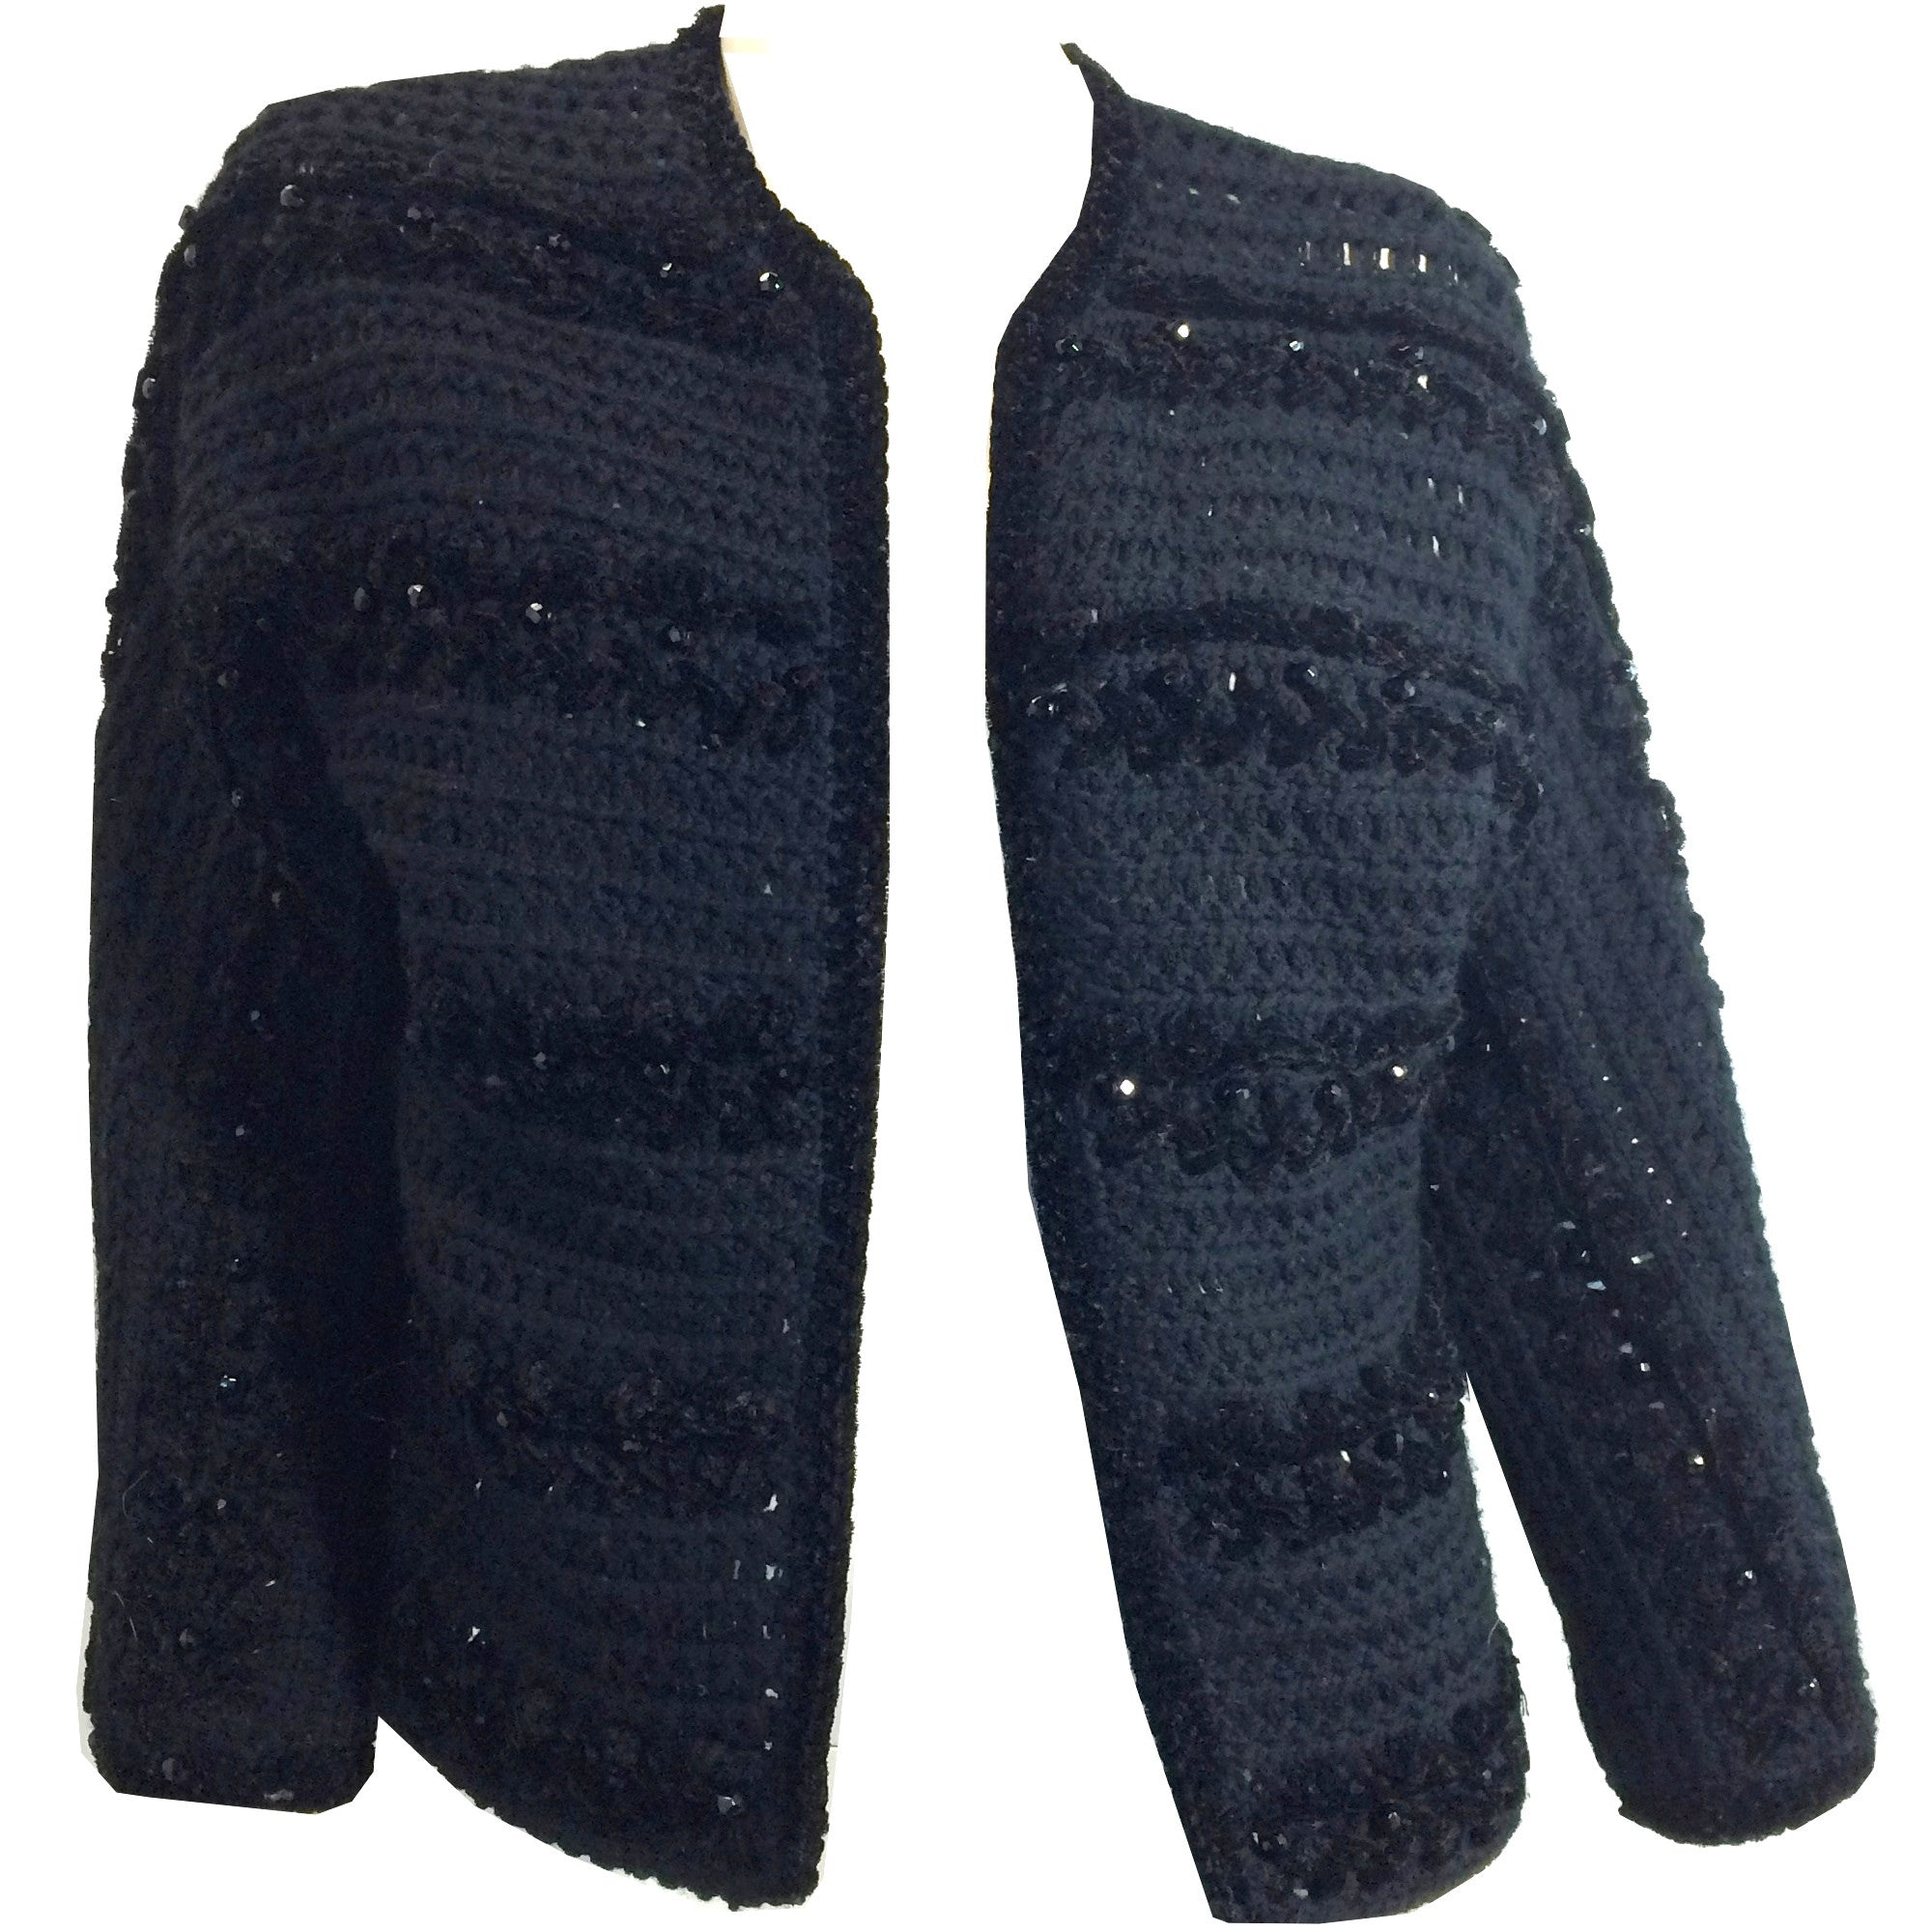 Lush Black Chenille Knit Beaded Cardigan Sweater circa 1960s